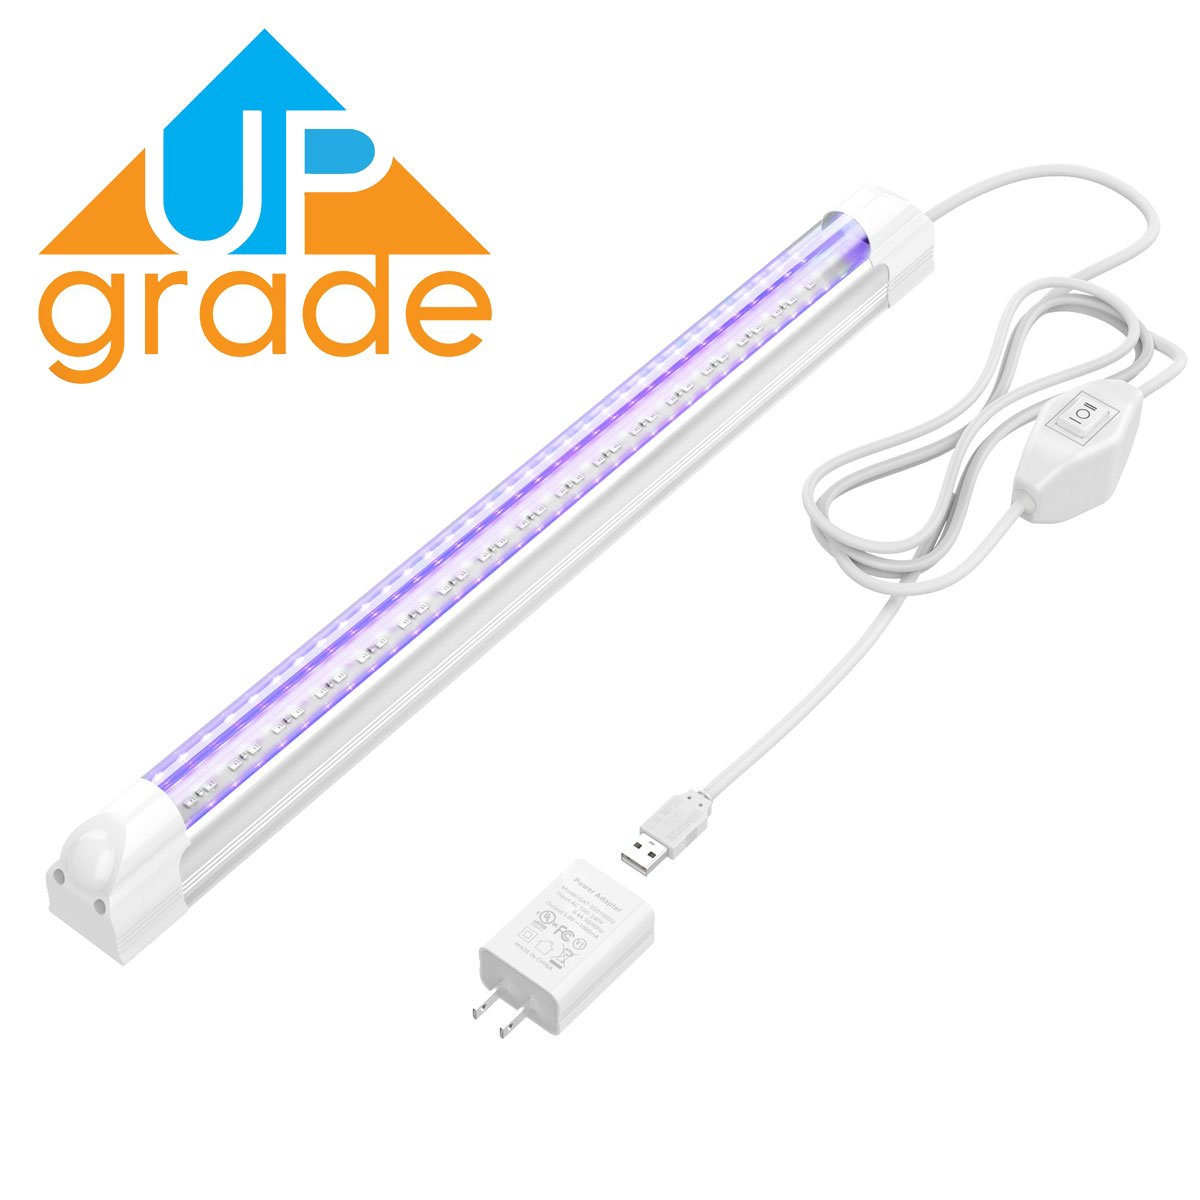 [Upgrade] UV LED Black Light Fixture, KAIKING Heavy Duty 6W Portable USB Blacklight for UV Poster, UV Art, Ultraviolet Curing, Authentication Currency, Stain Detector Or Home Party